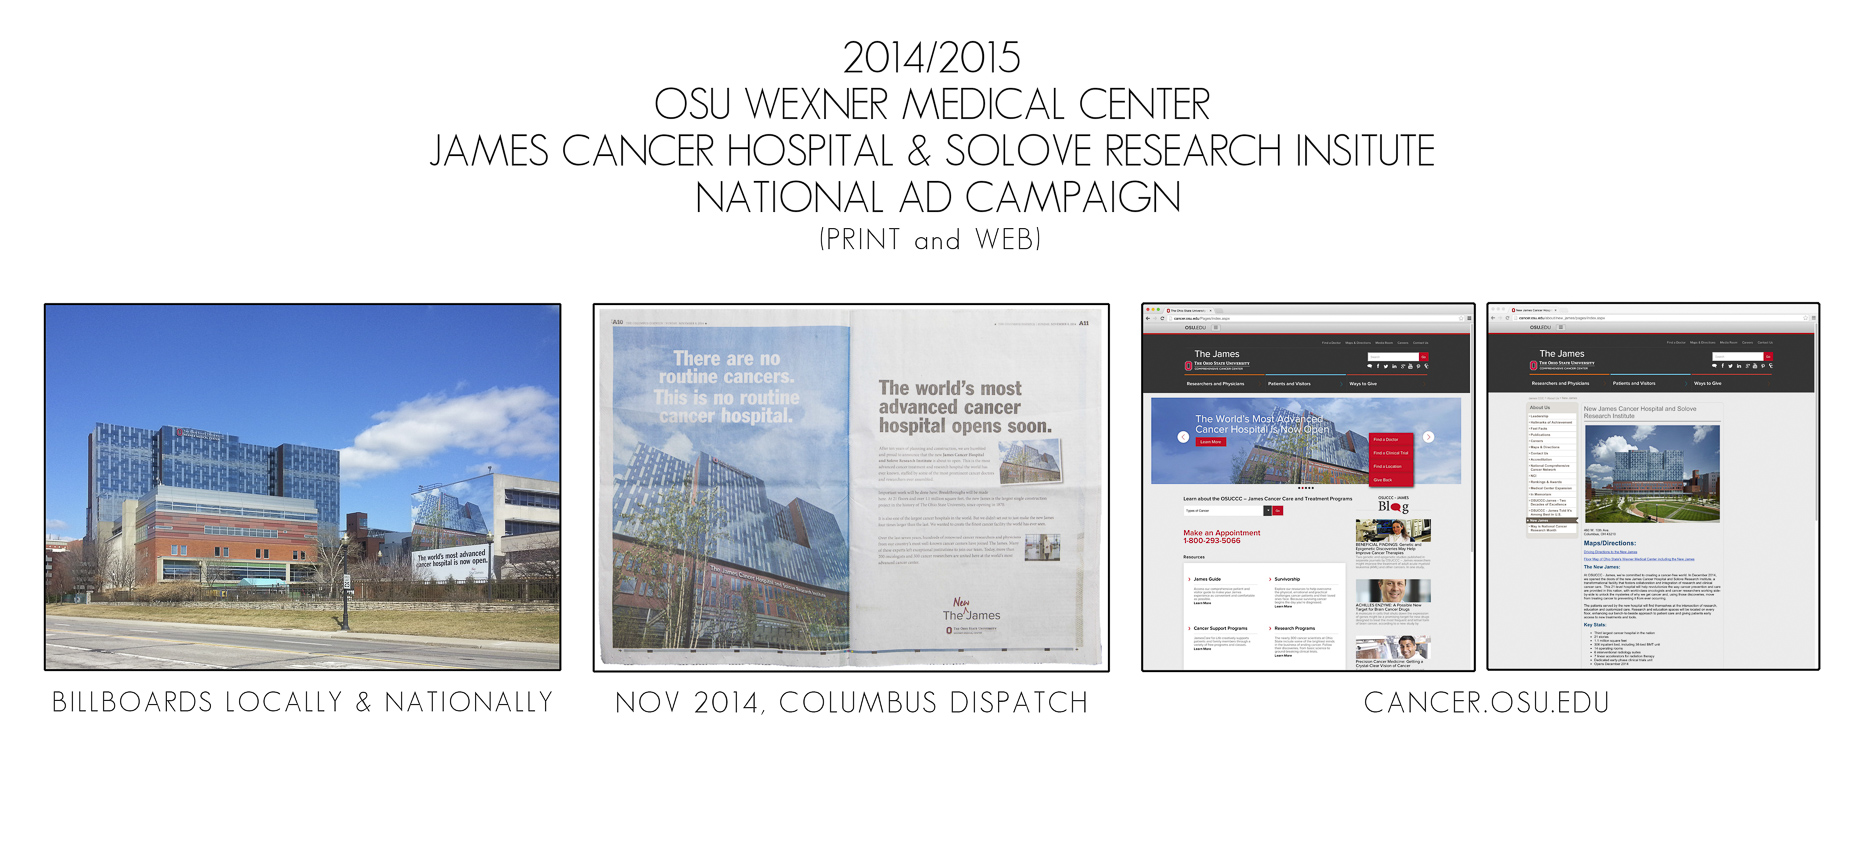 OSU Wexner Medical Center James Cancer Hospital & Solove Research Center Ad Campaign